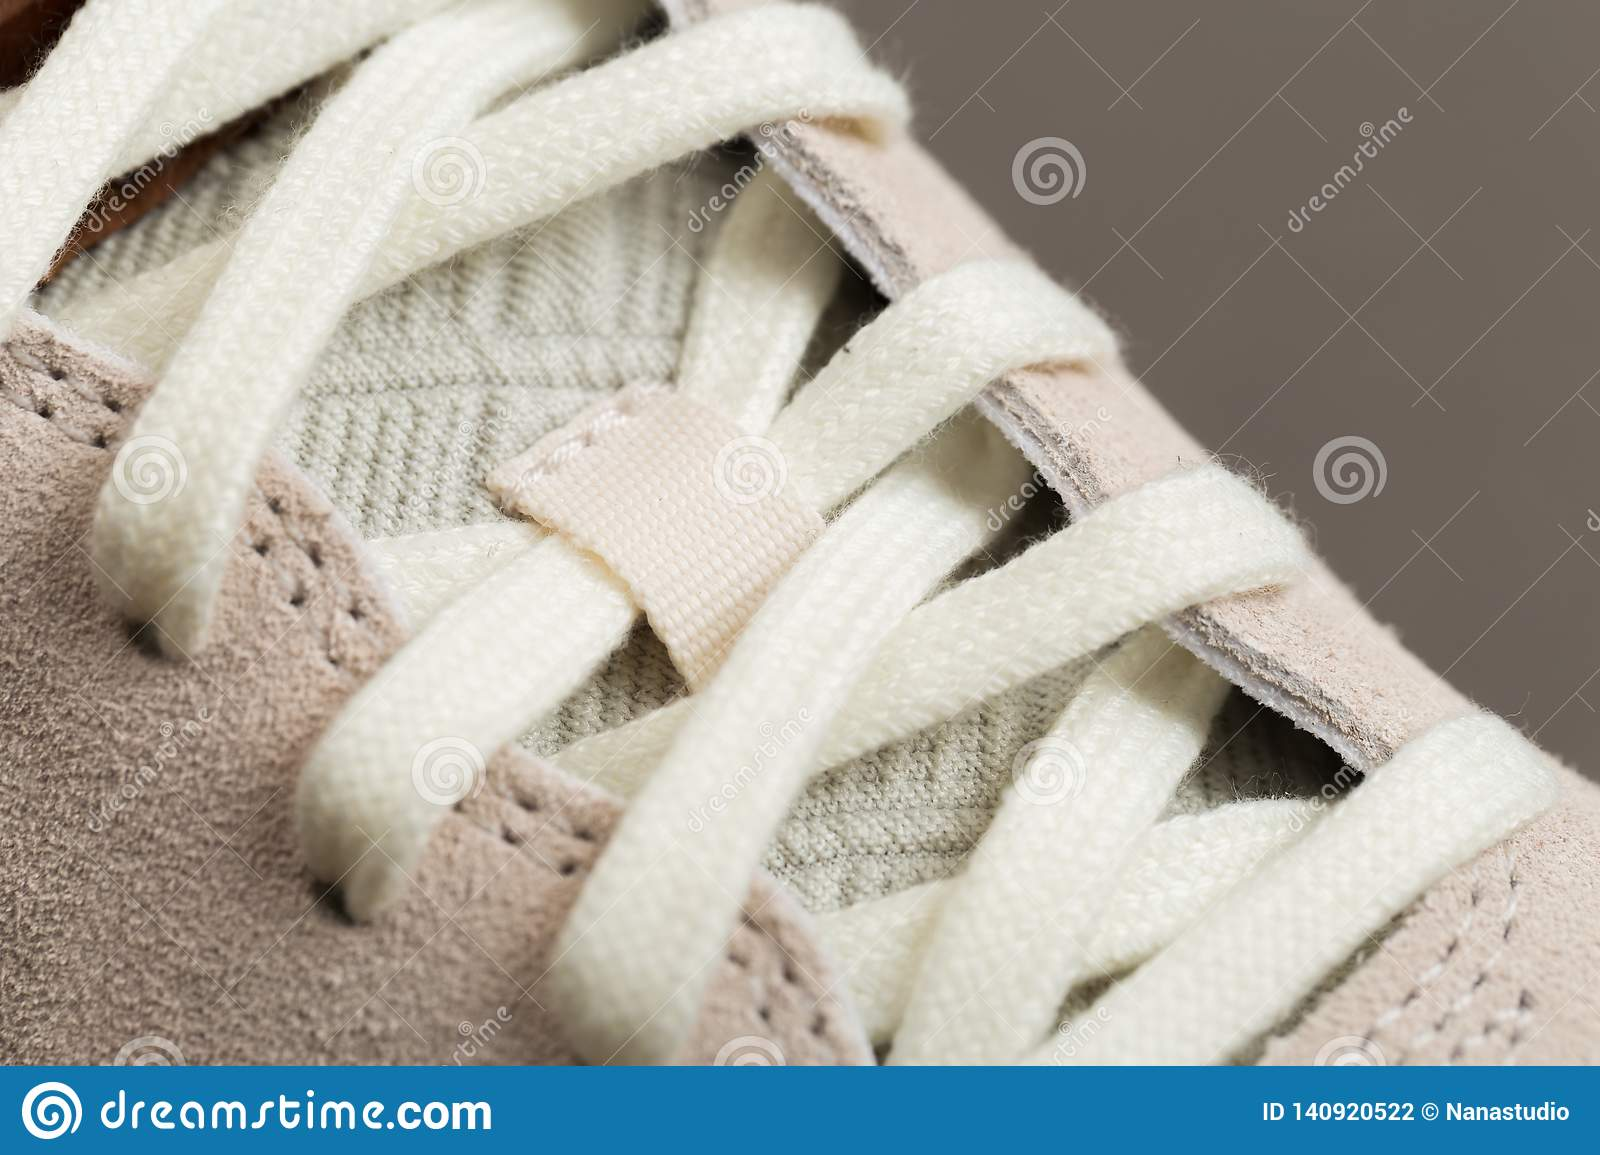 Sport shoes with white laces